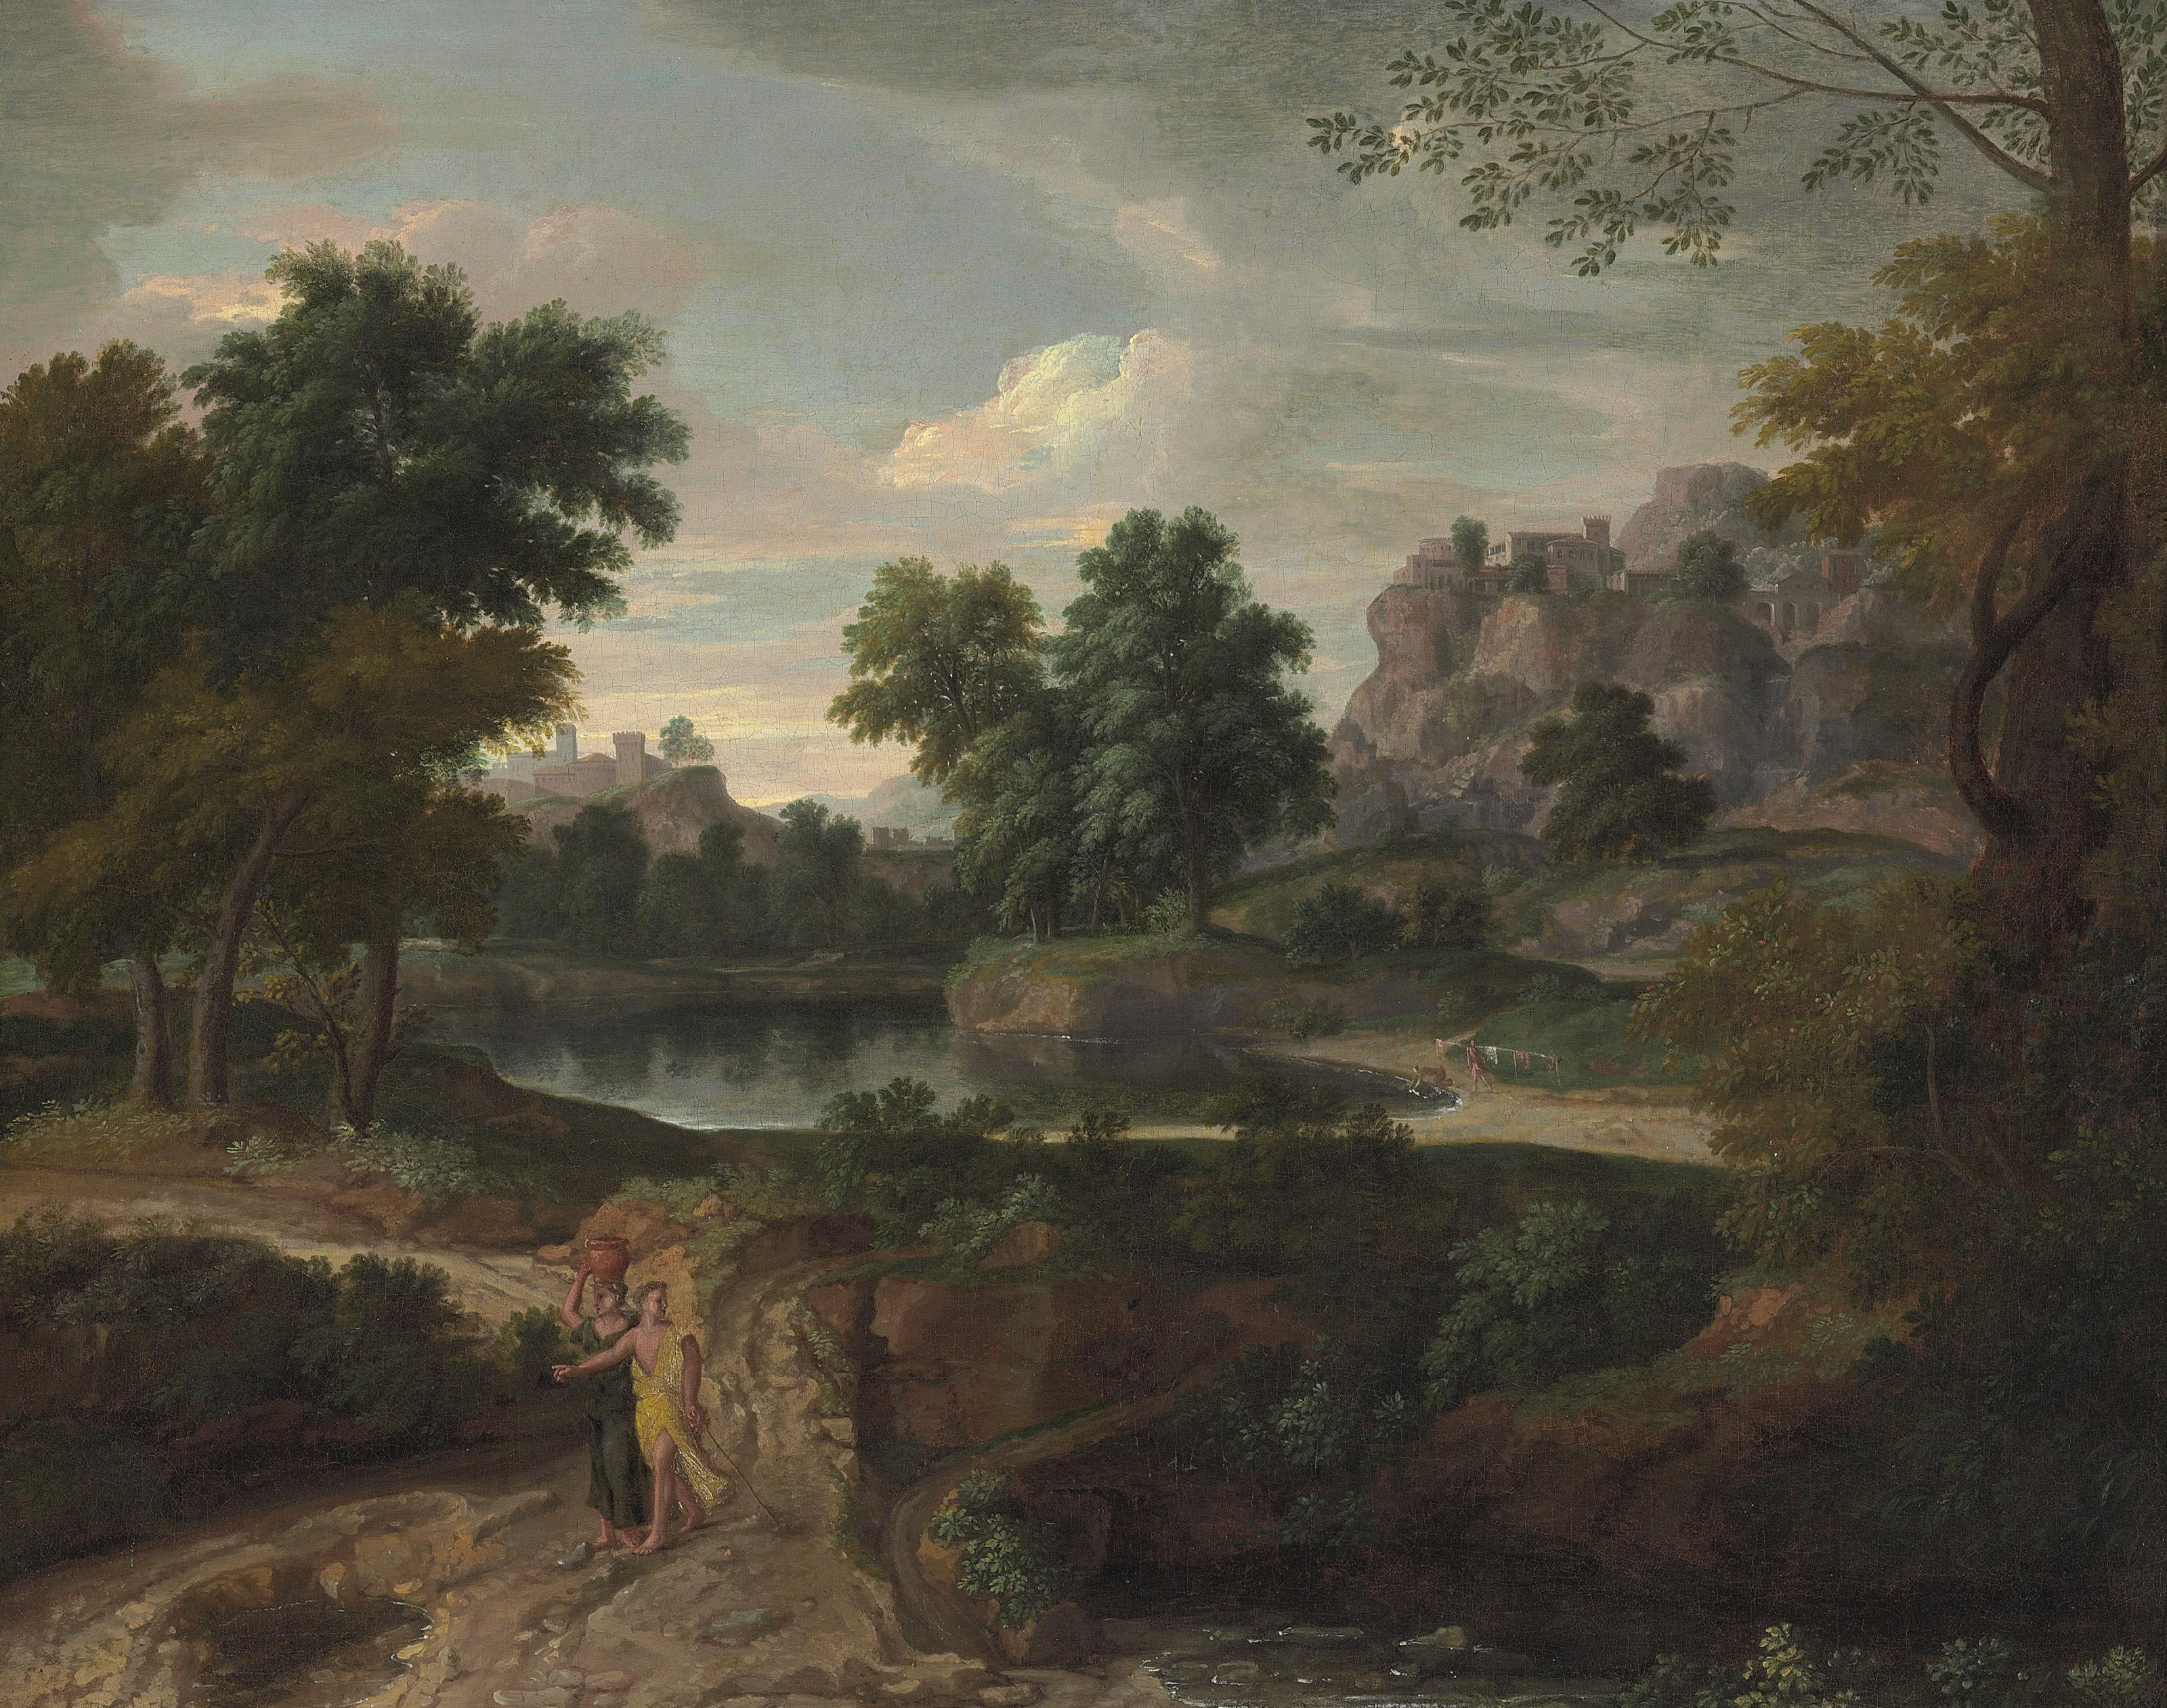 Two figures on a path in a wooded classical landscape, buildings and a pool of water beyond